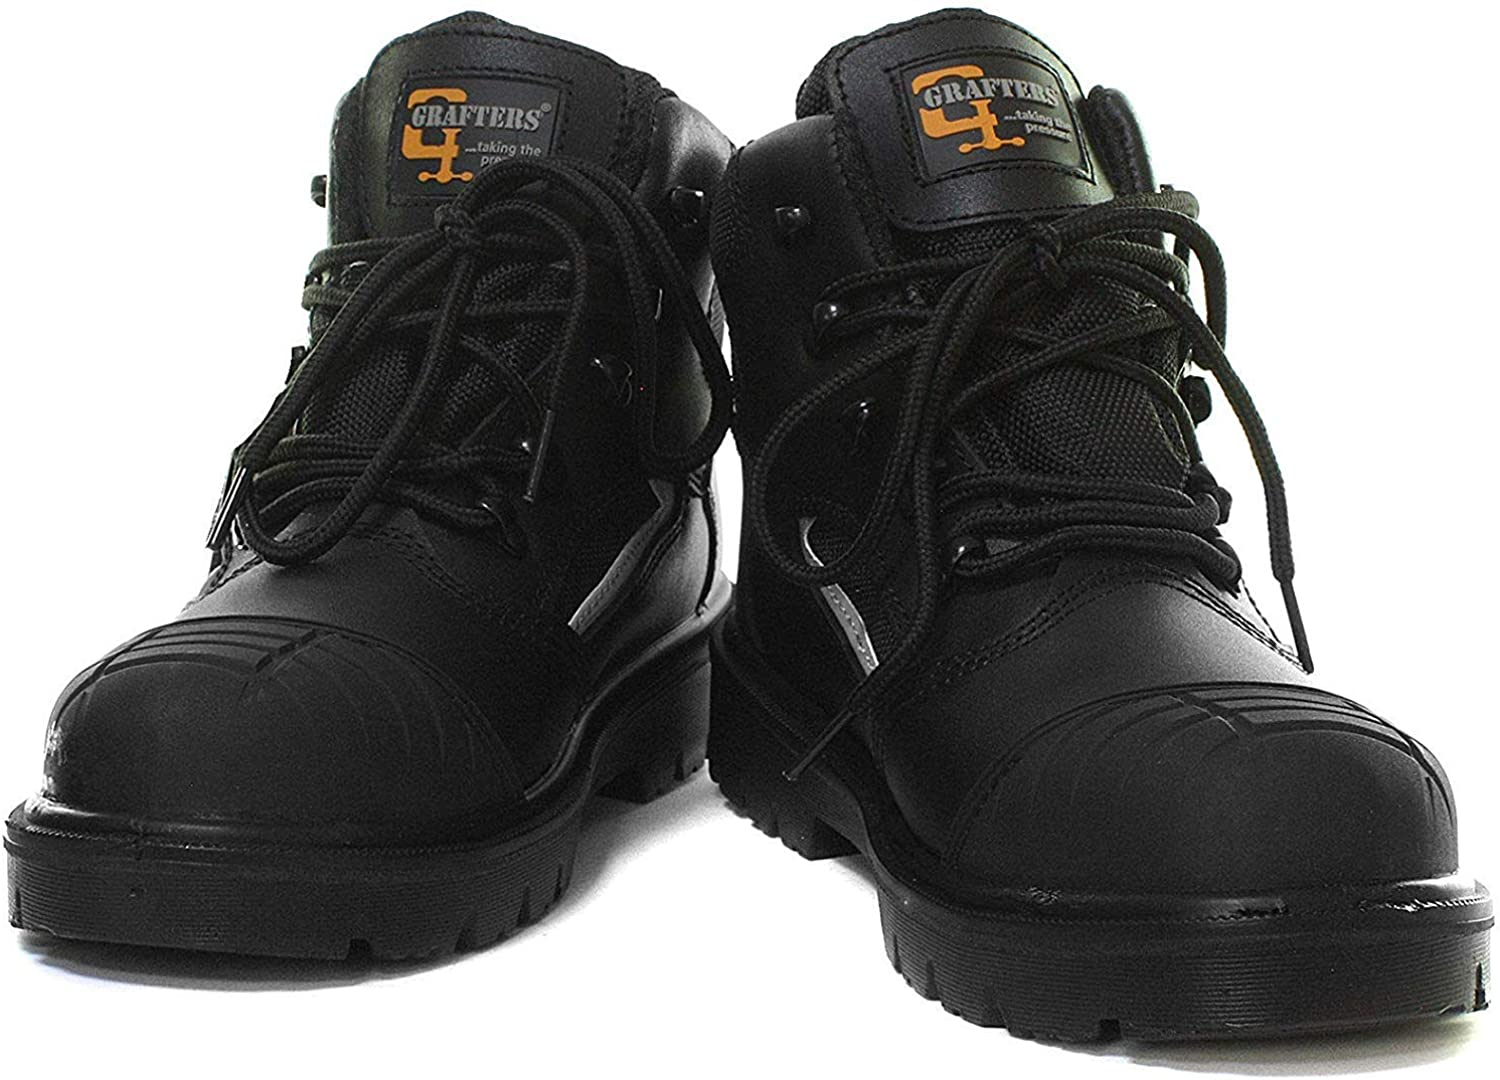 mens S3 hiker type safety boots jontex waterproof /& breathable membrane size 6